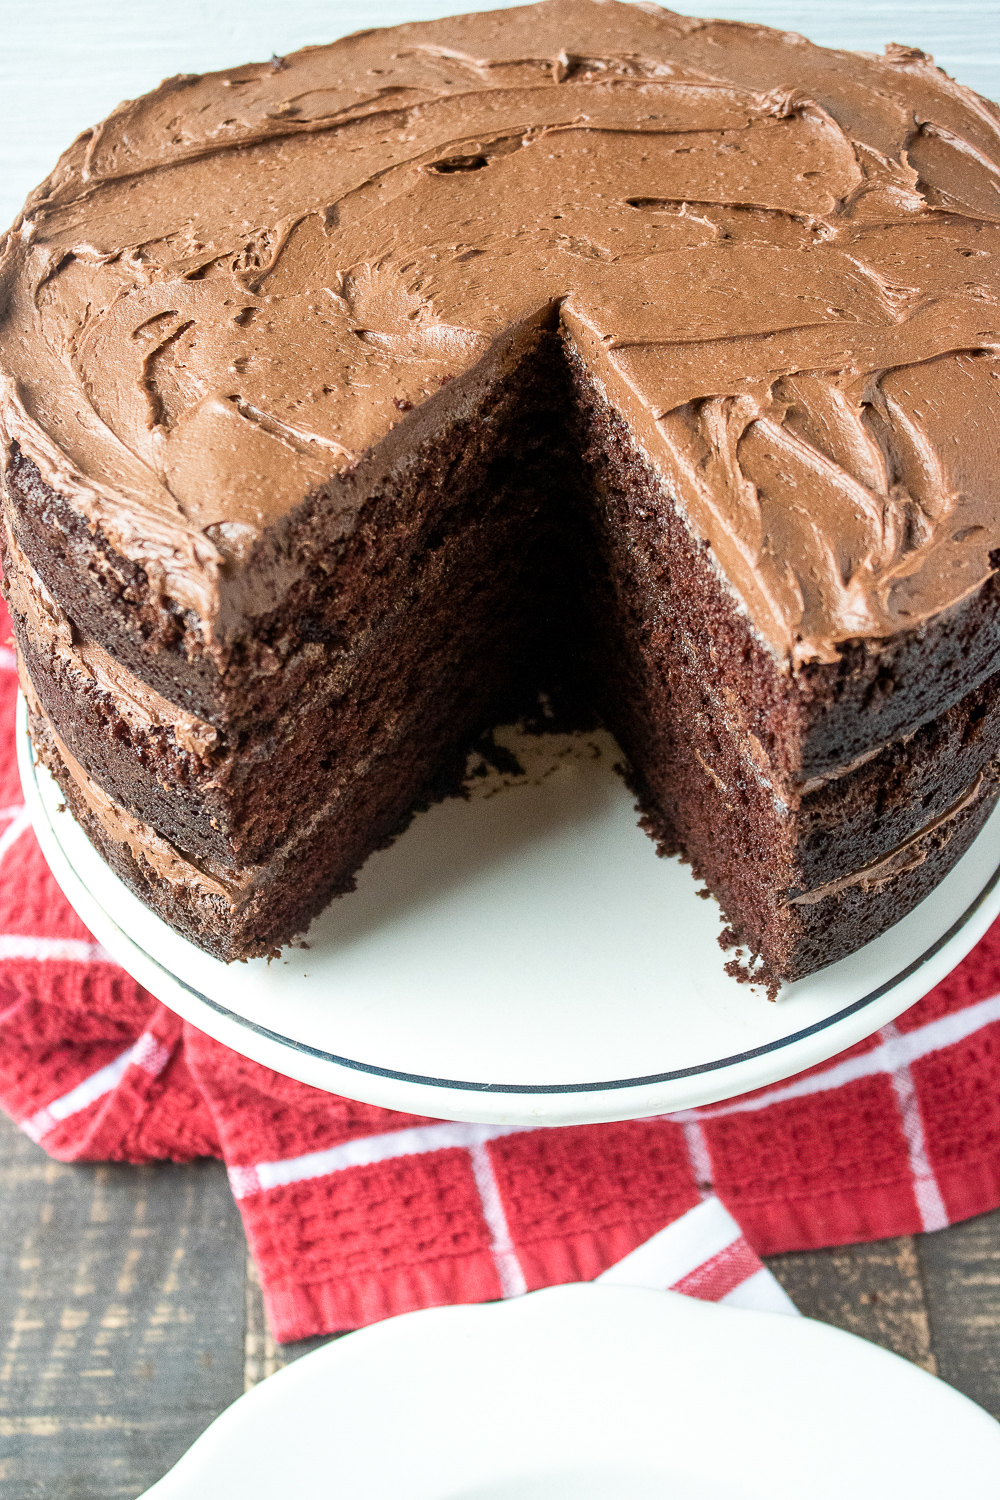 The best chocolate cake recipe with a big piece taken out on a red towel and white cake stand